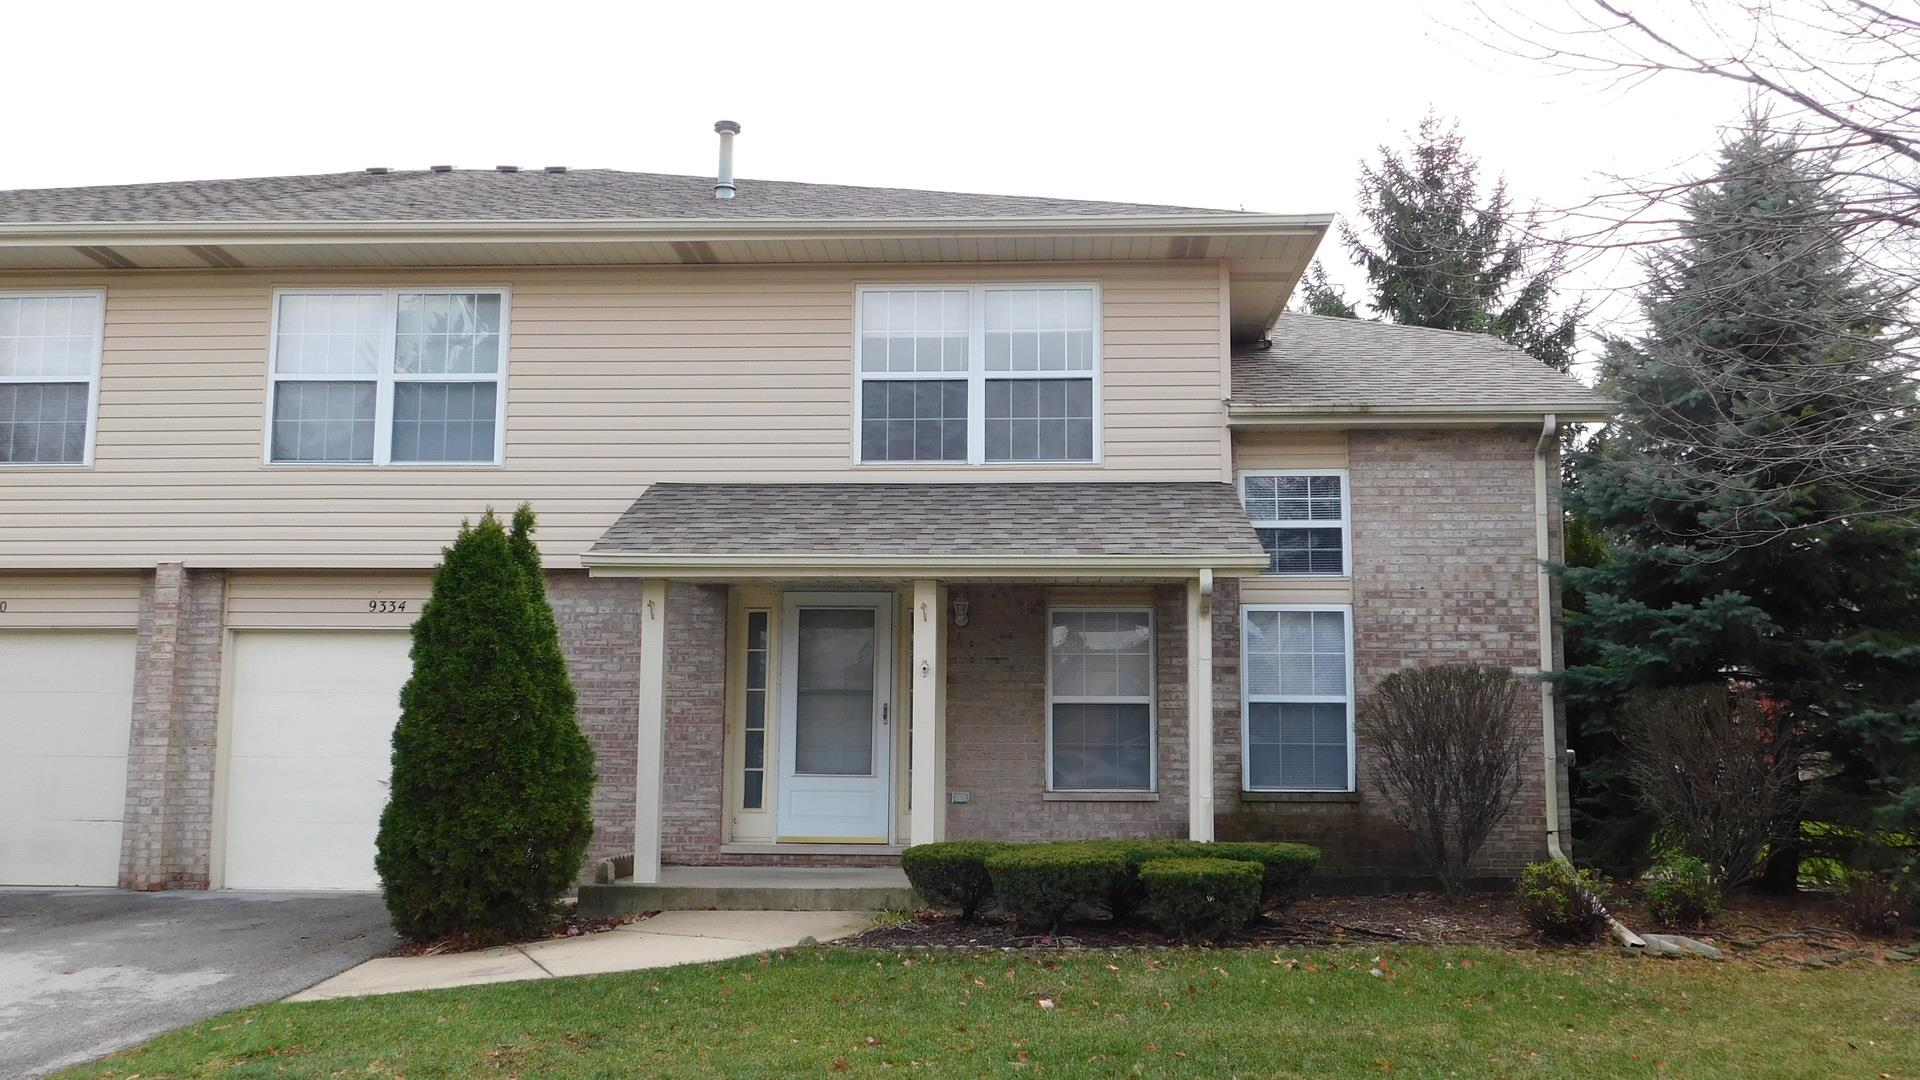 9334 Meadowview Drive, Orland Hills, IL 60487 - #: 10941766